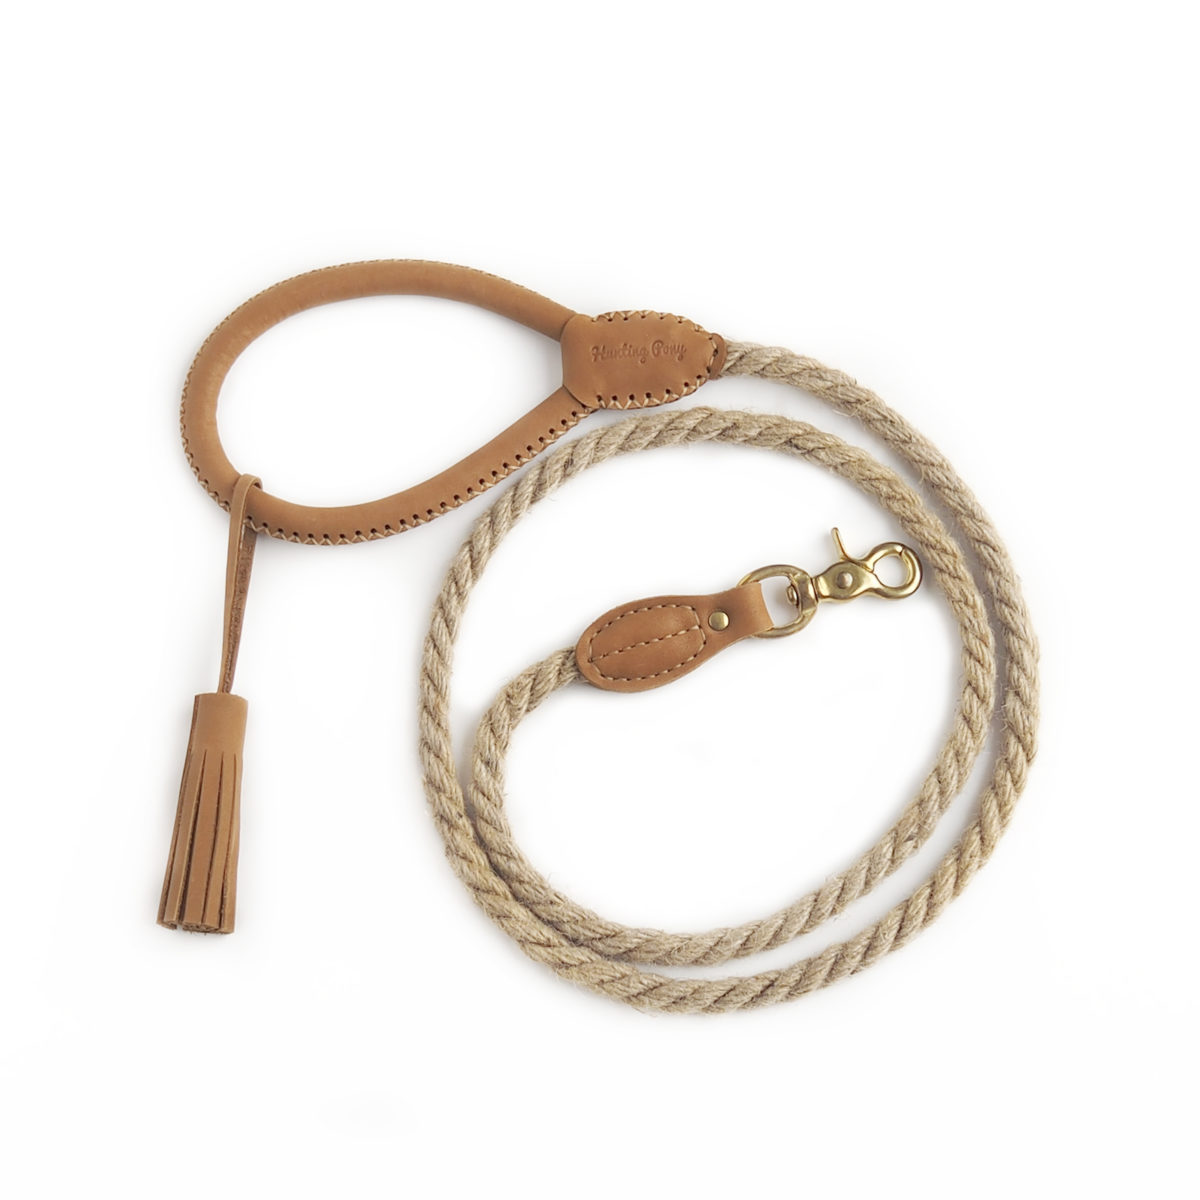 Country style rope dog lead